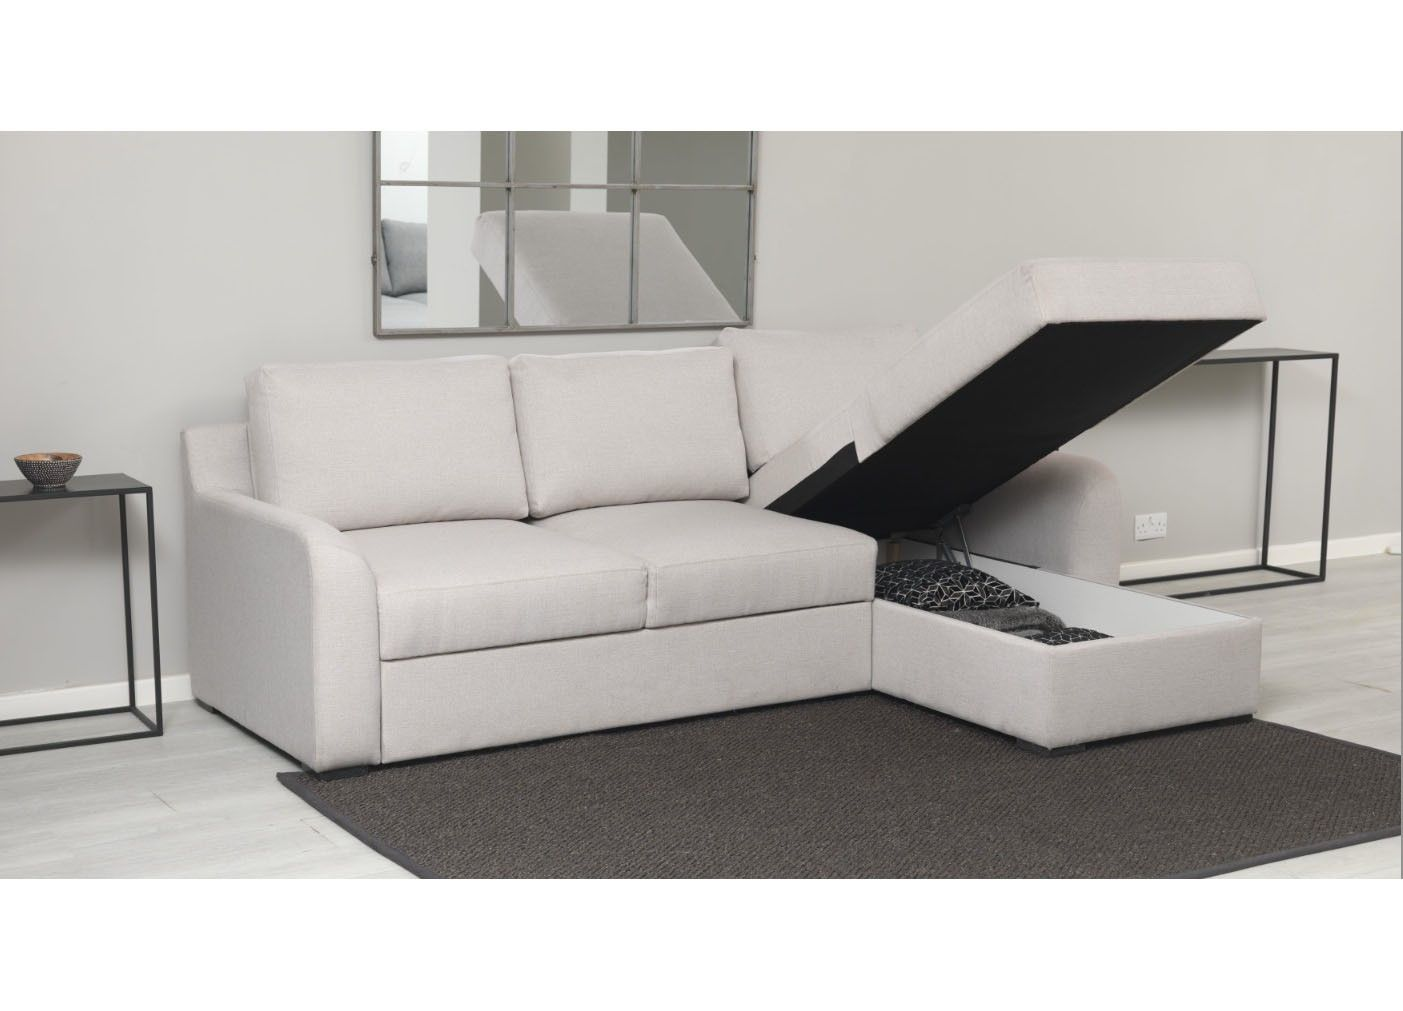 Sofa Beds With Storage Compact Furniture Pieces For Today S Small